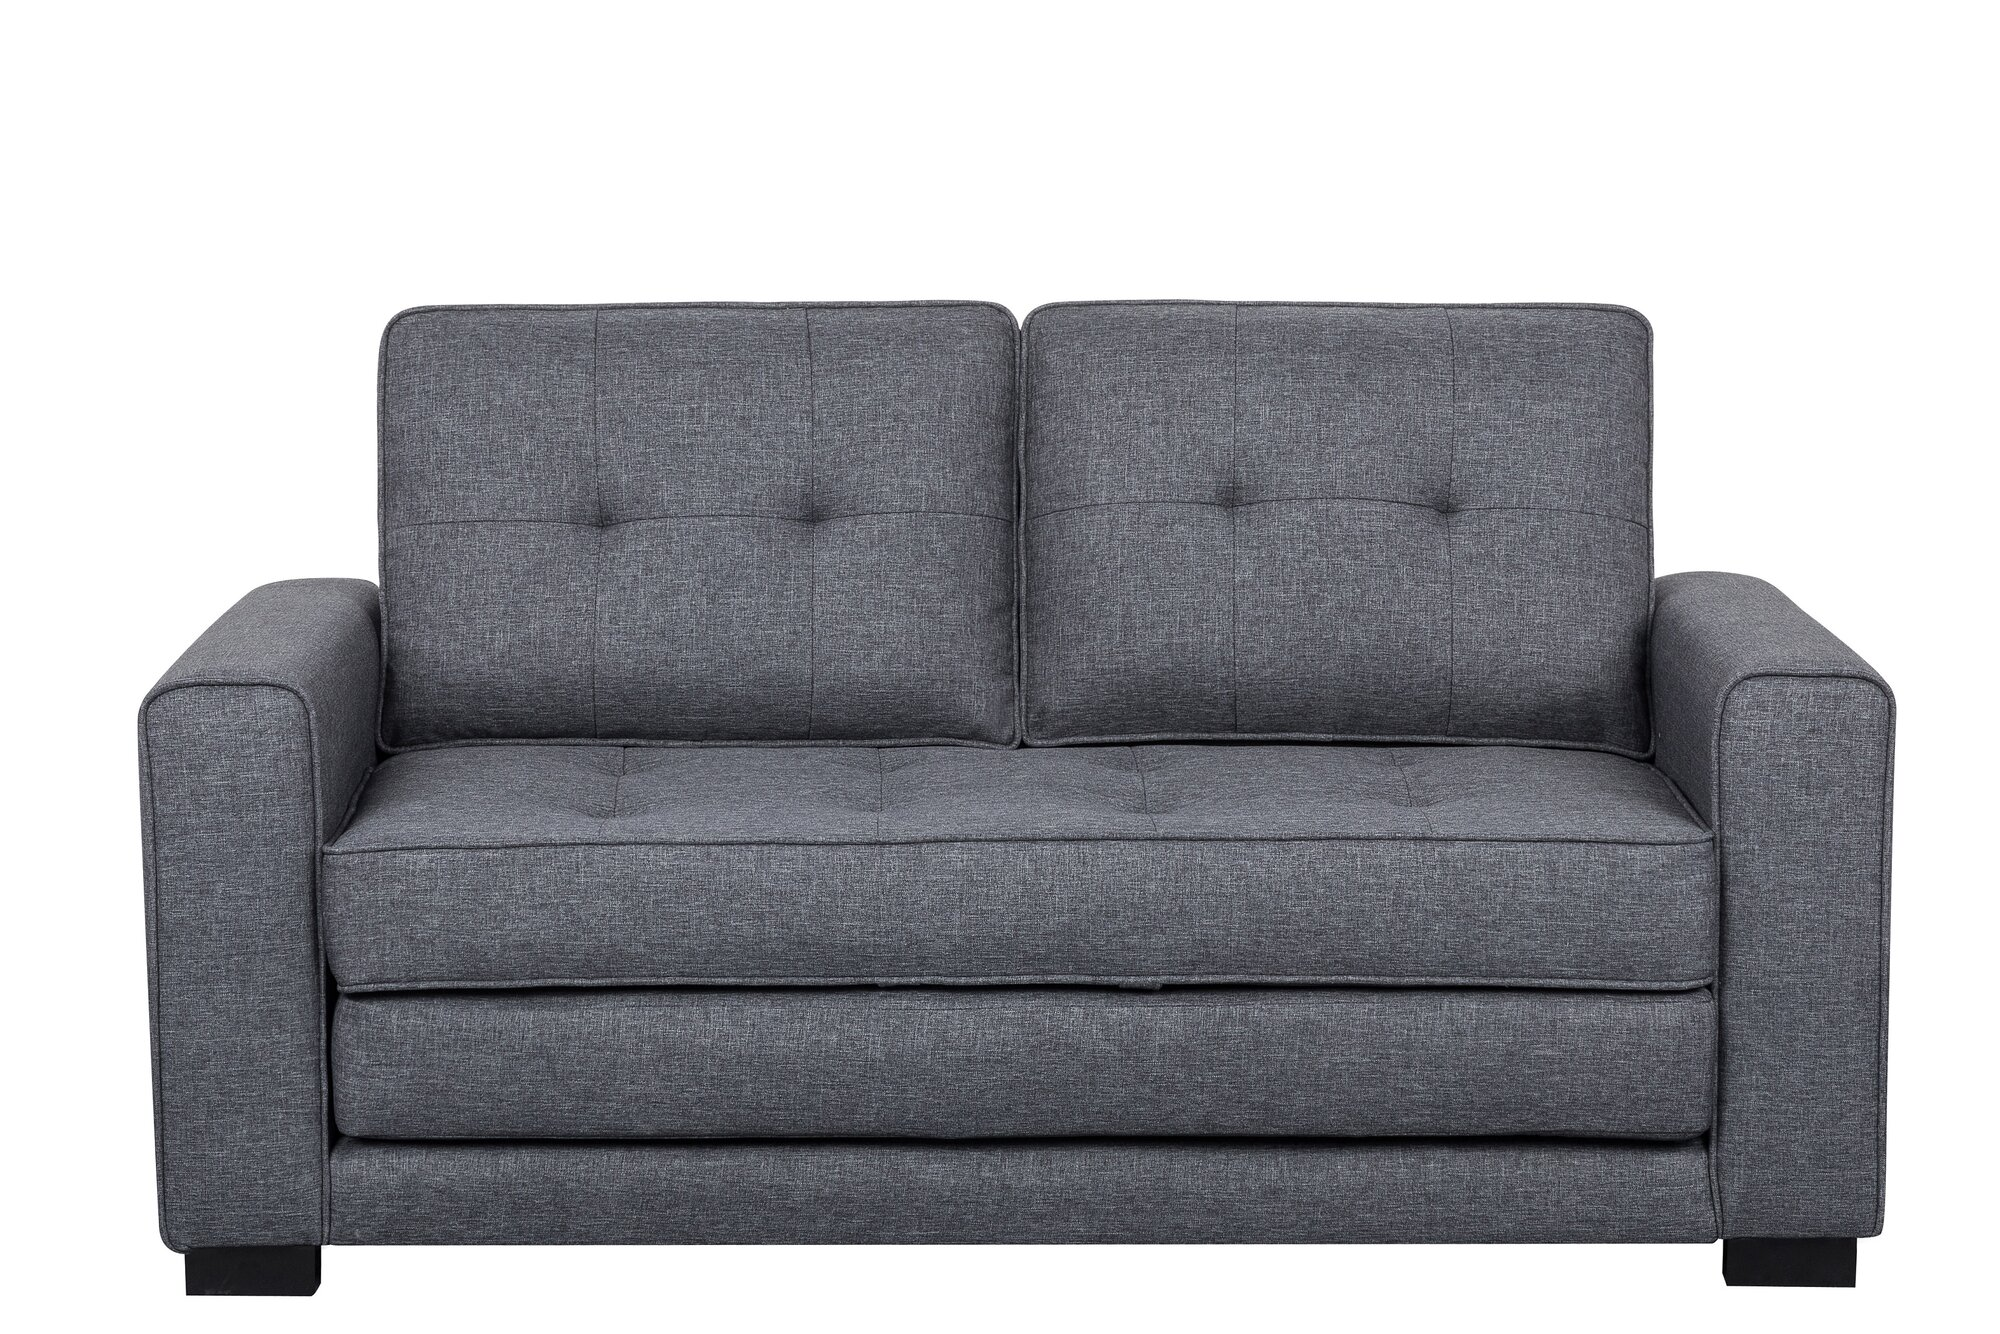 Varick Gallery Duke Sleeper Sofa